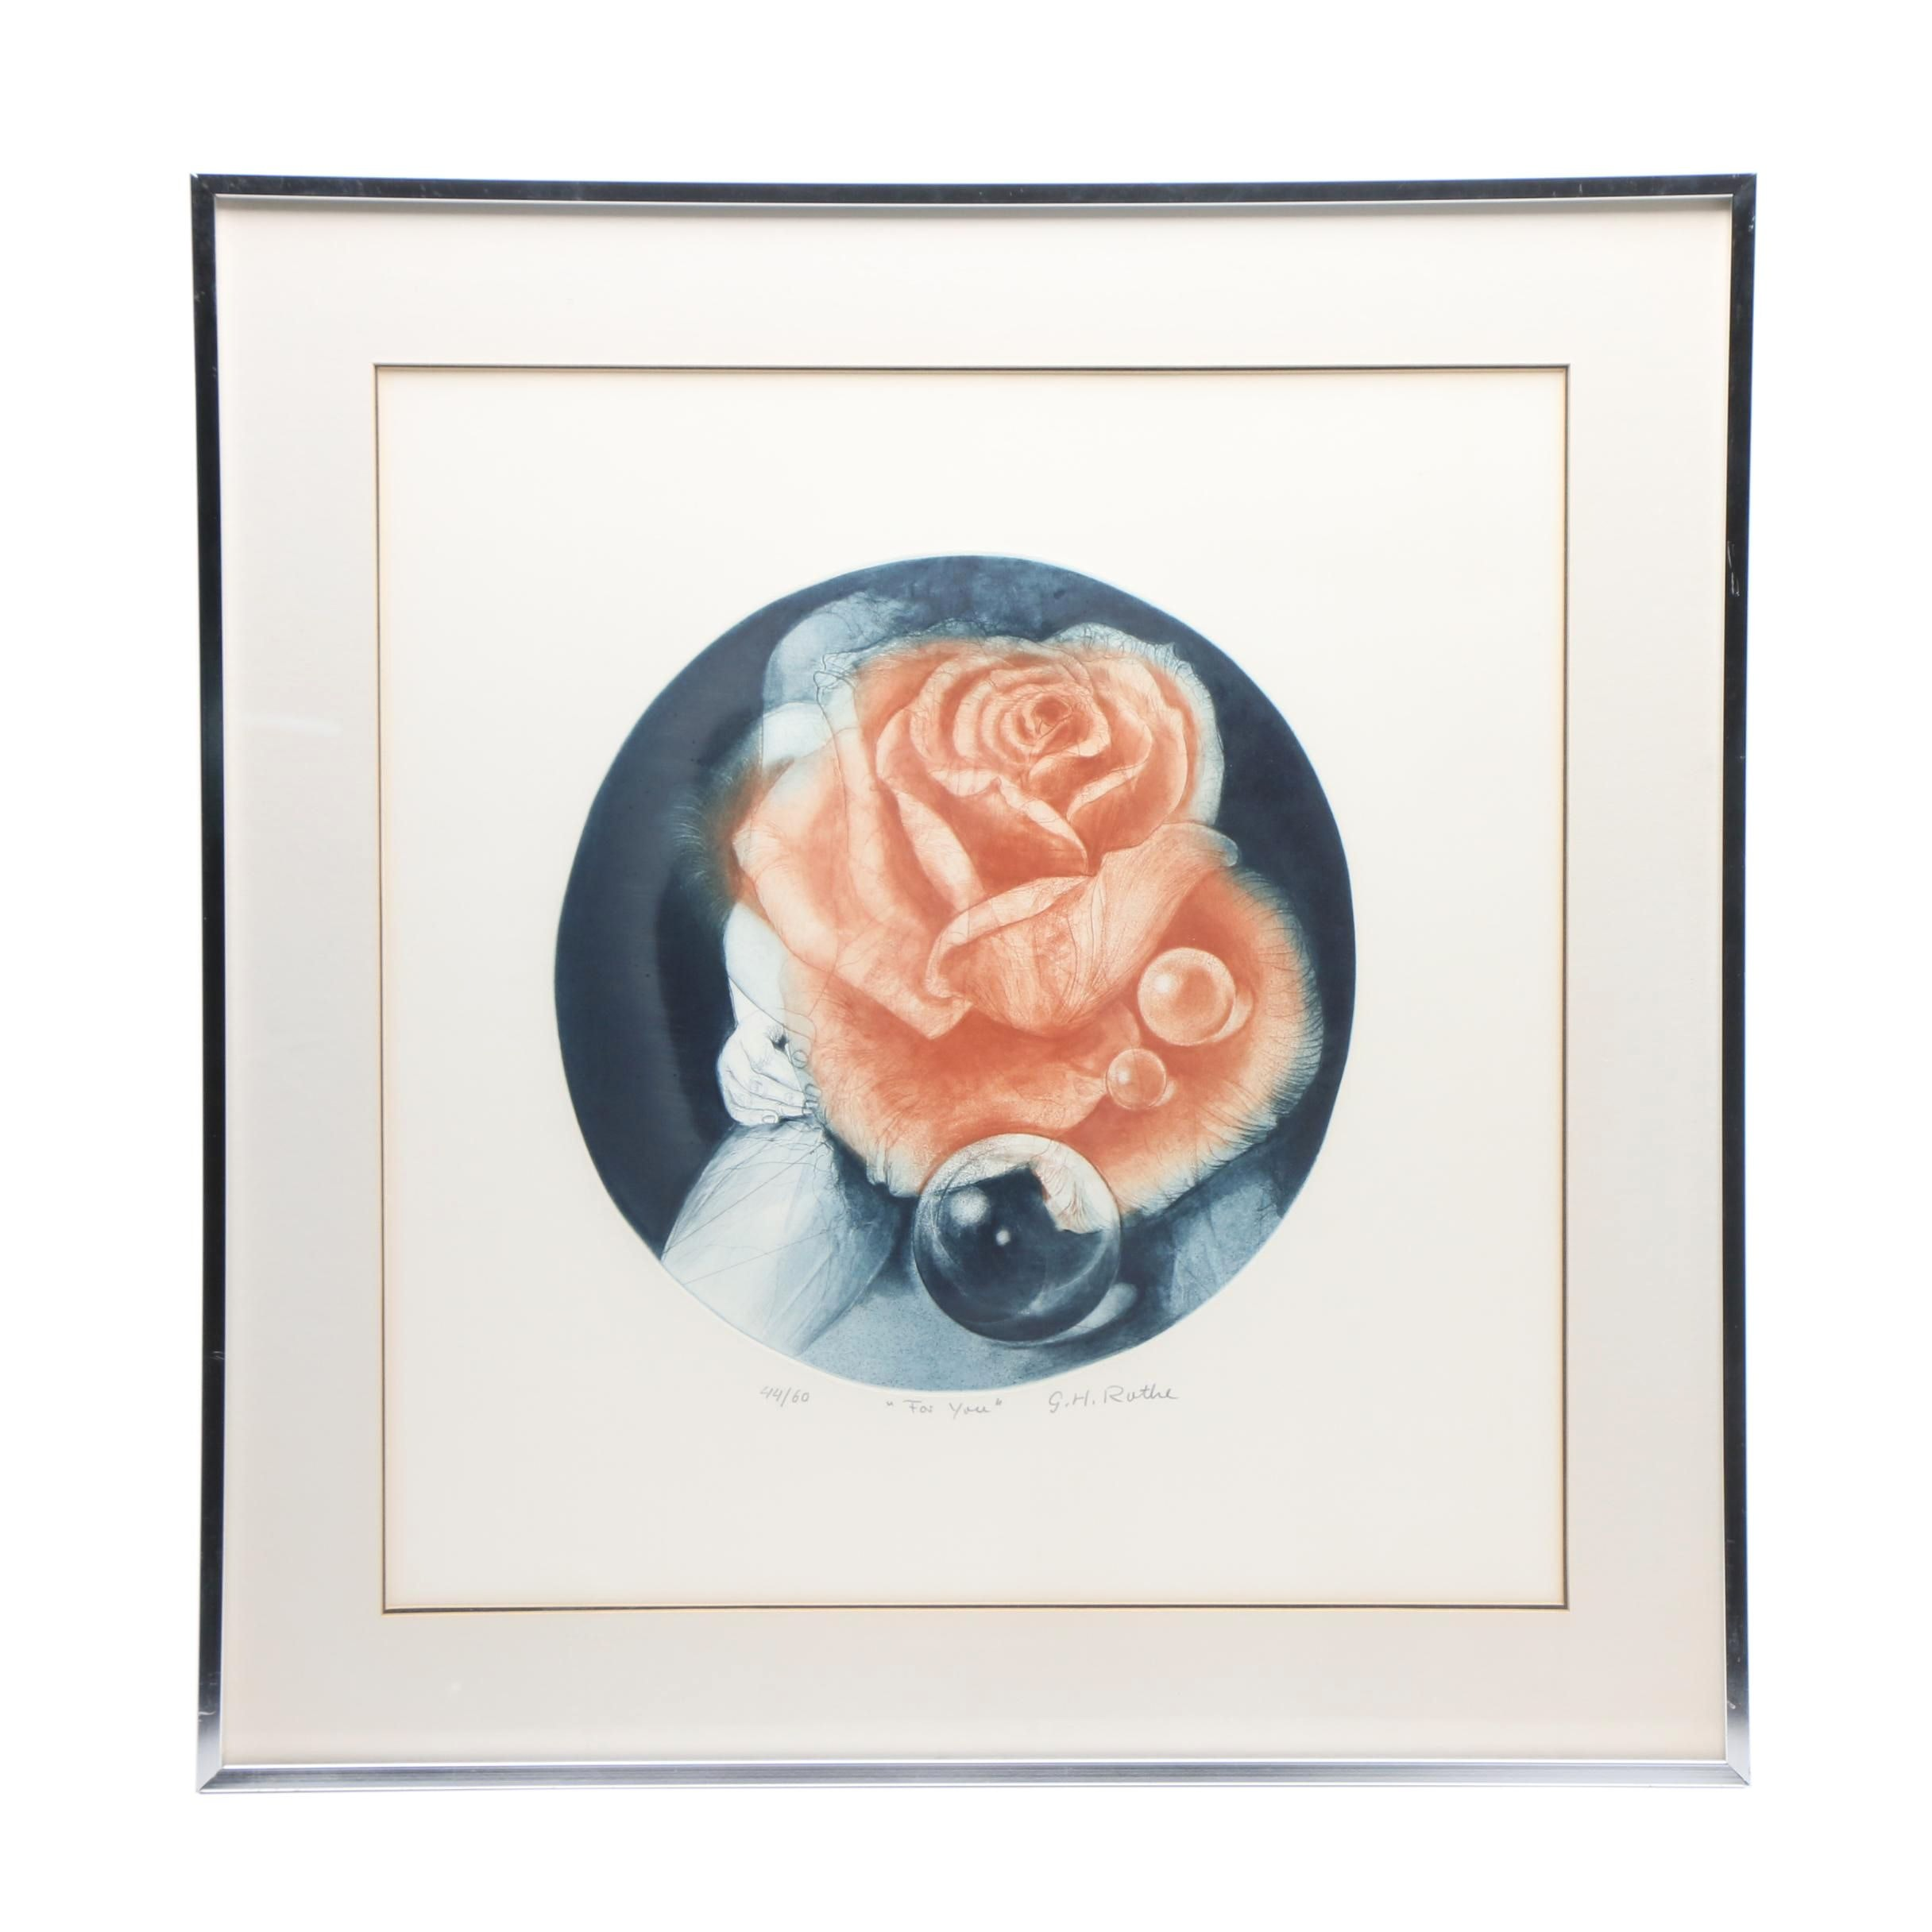 """Gatja Helgart Rothe Limited Edition Mezzotint Etching """"For You"""""""